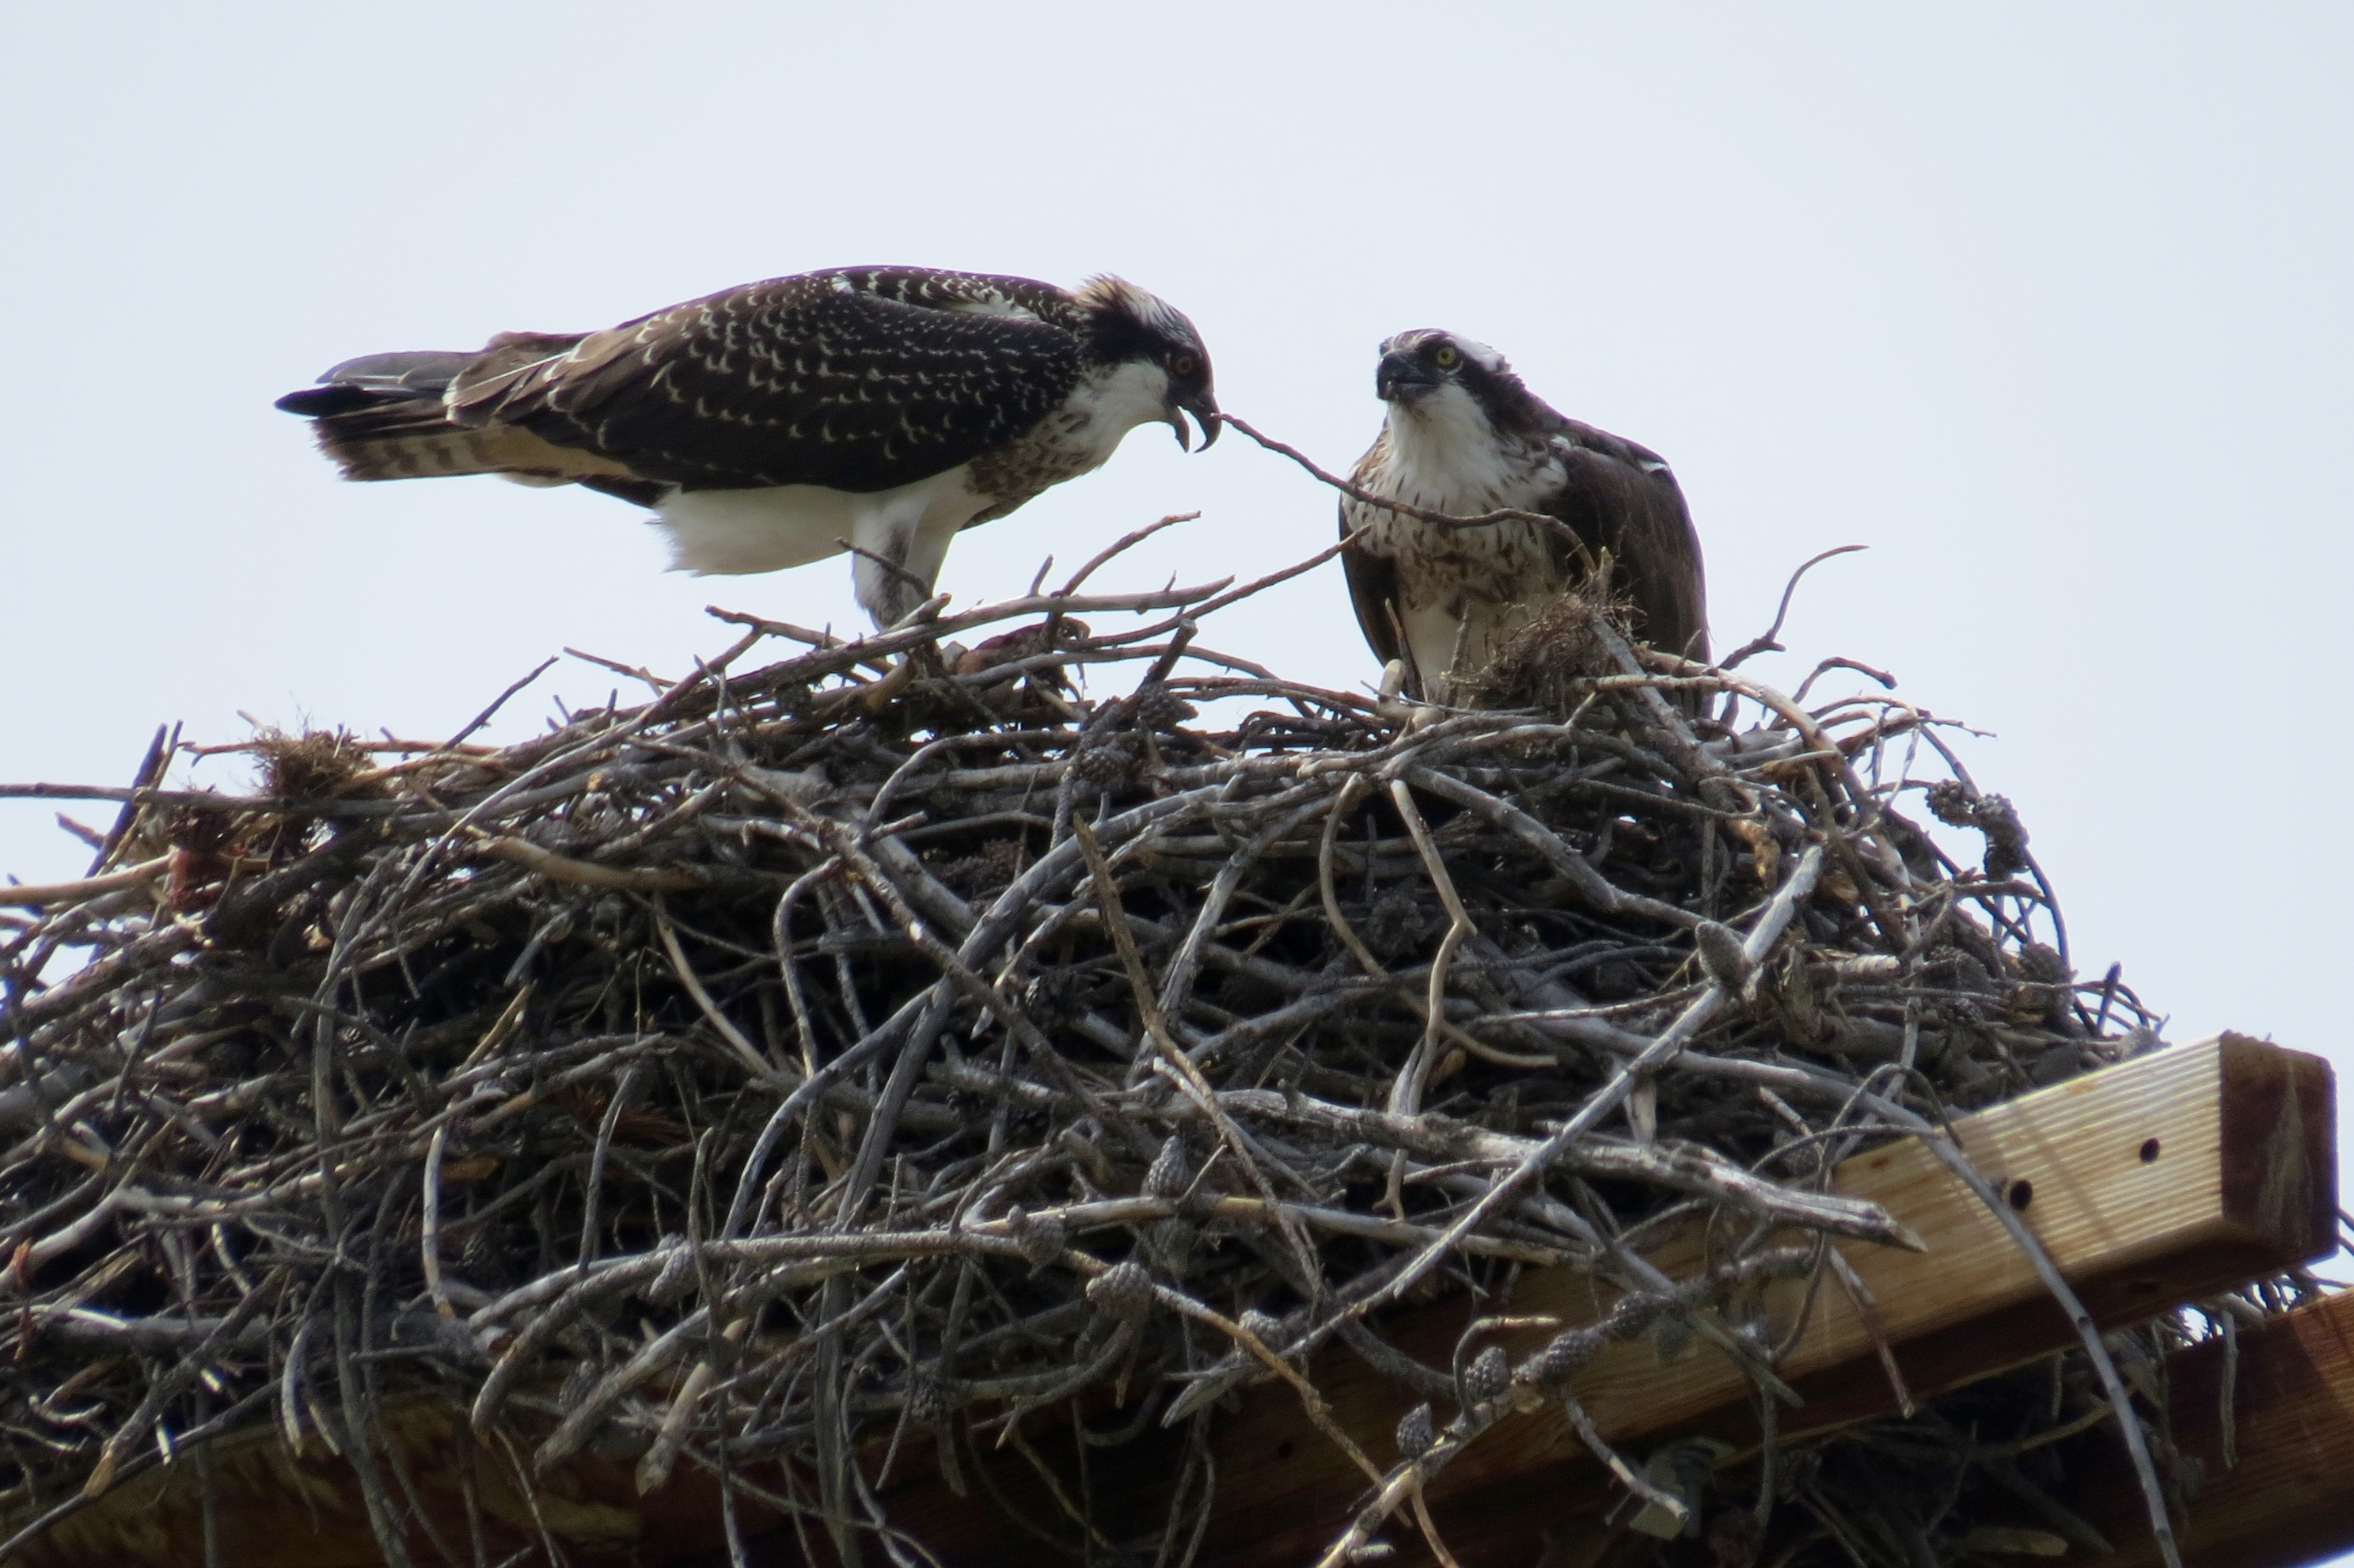 THESE JUVENILE OSPREYS WERE CHATTERING LOUDLY. ALTHOUGH WE THINK THEY HAVE FLEDGED AND CAN FLY, THEY CLEARLY DID NOT WANT TO TAKE OFF. MOM AND DAD ARE GONE, WE THINK.